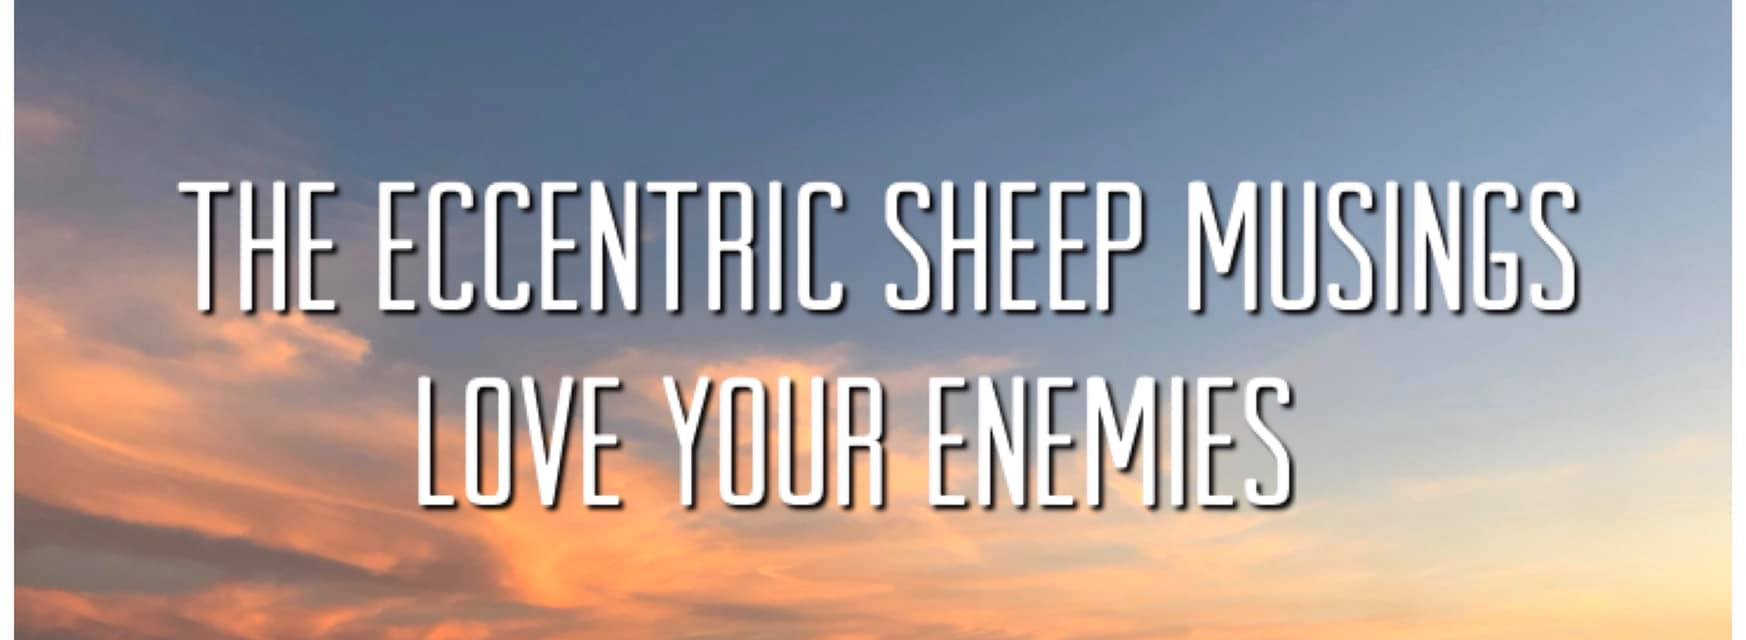 The Eccentric Sheep Musings: Love Your Enemies